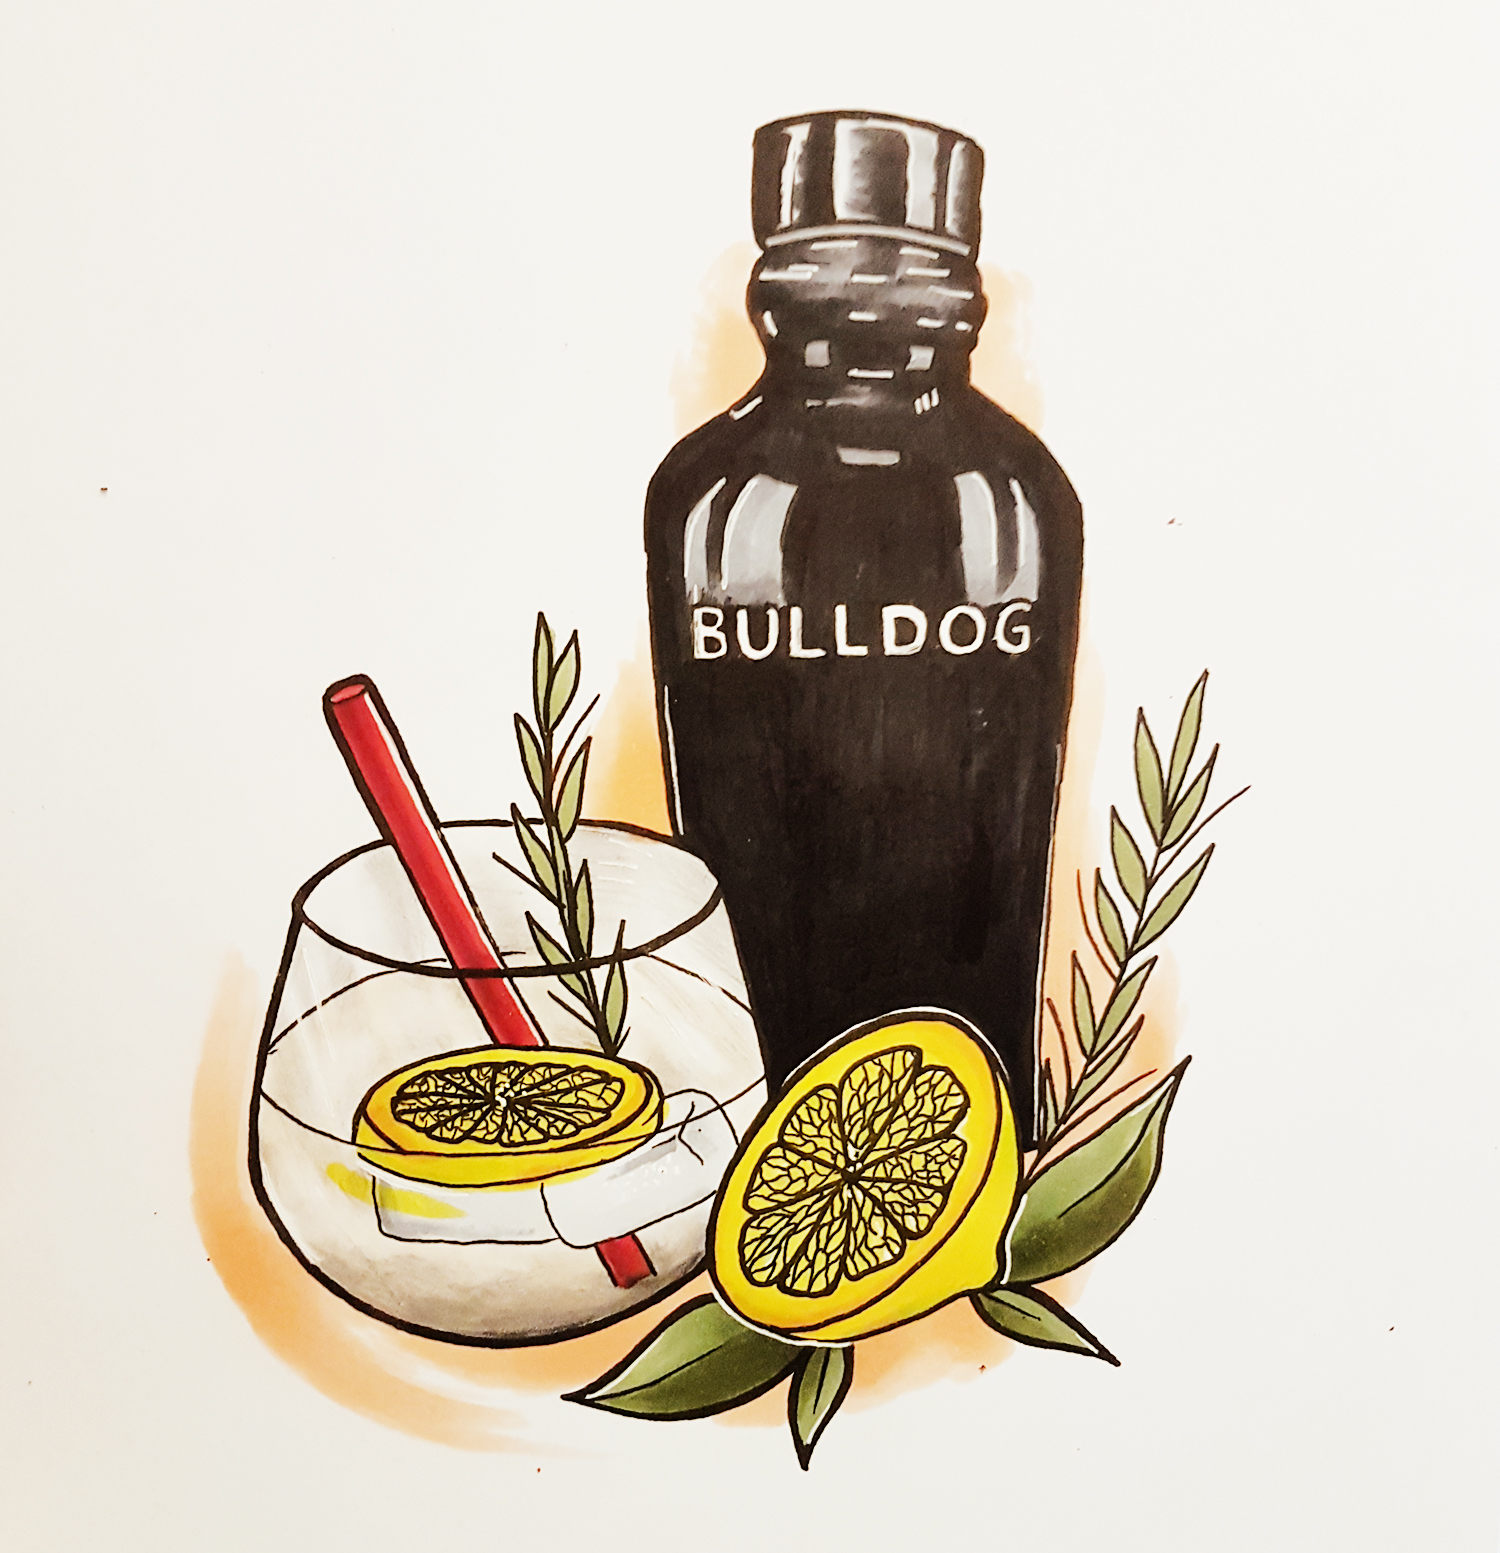 bulldog drink, illustration